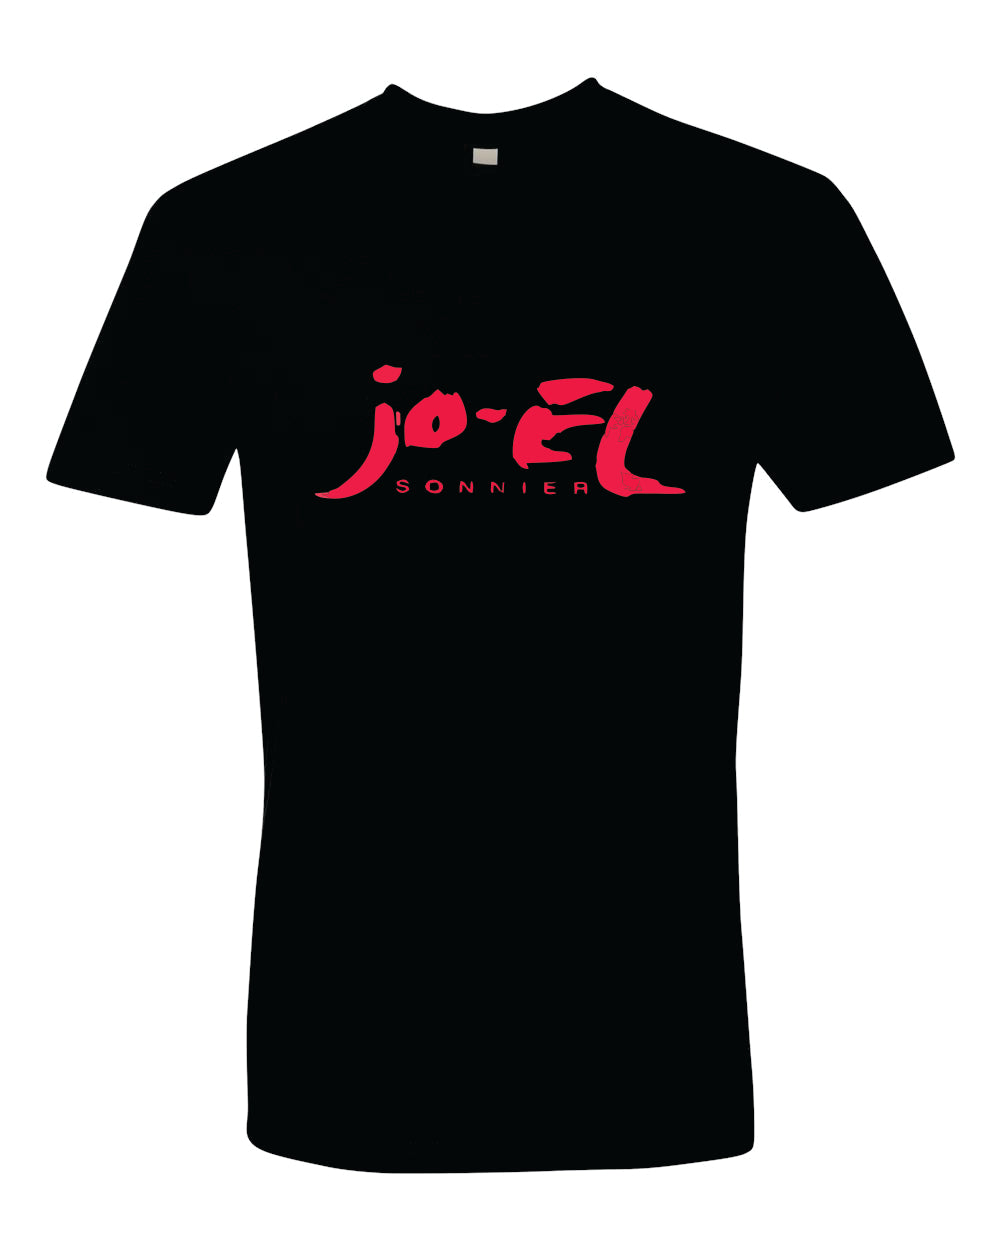 jo-el sonnier Photo T-Shirt